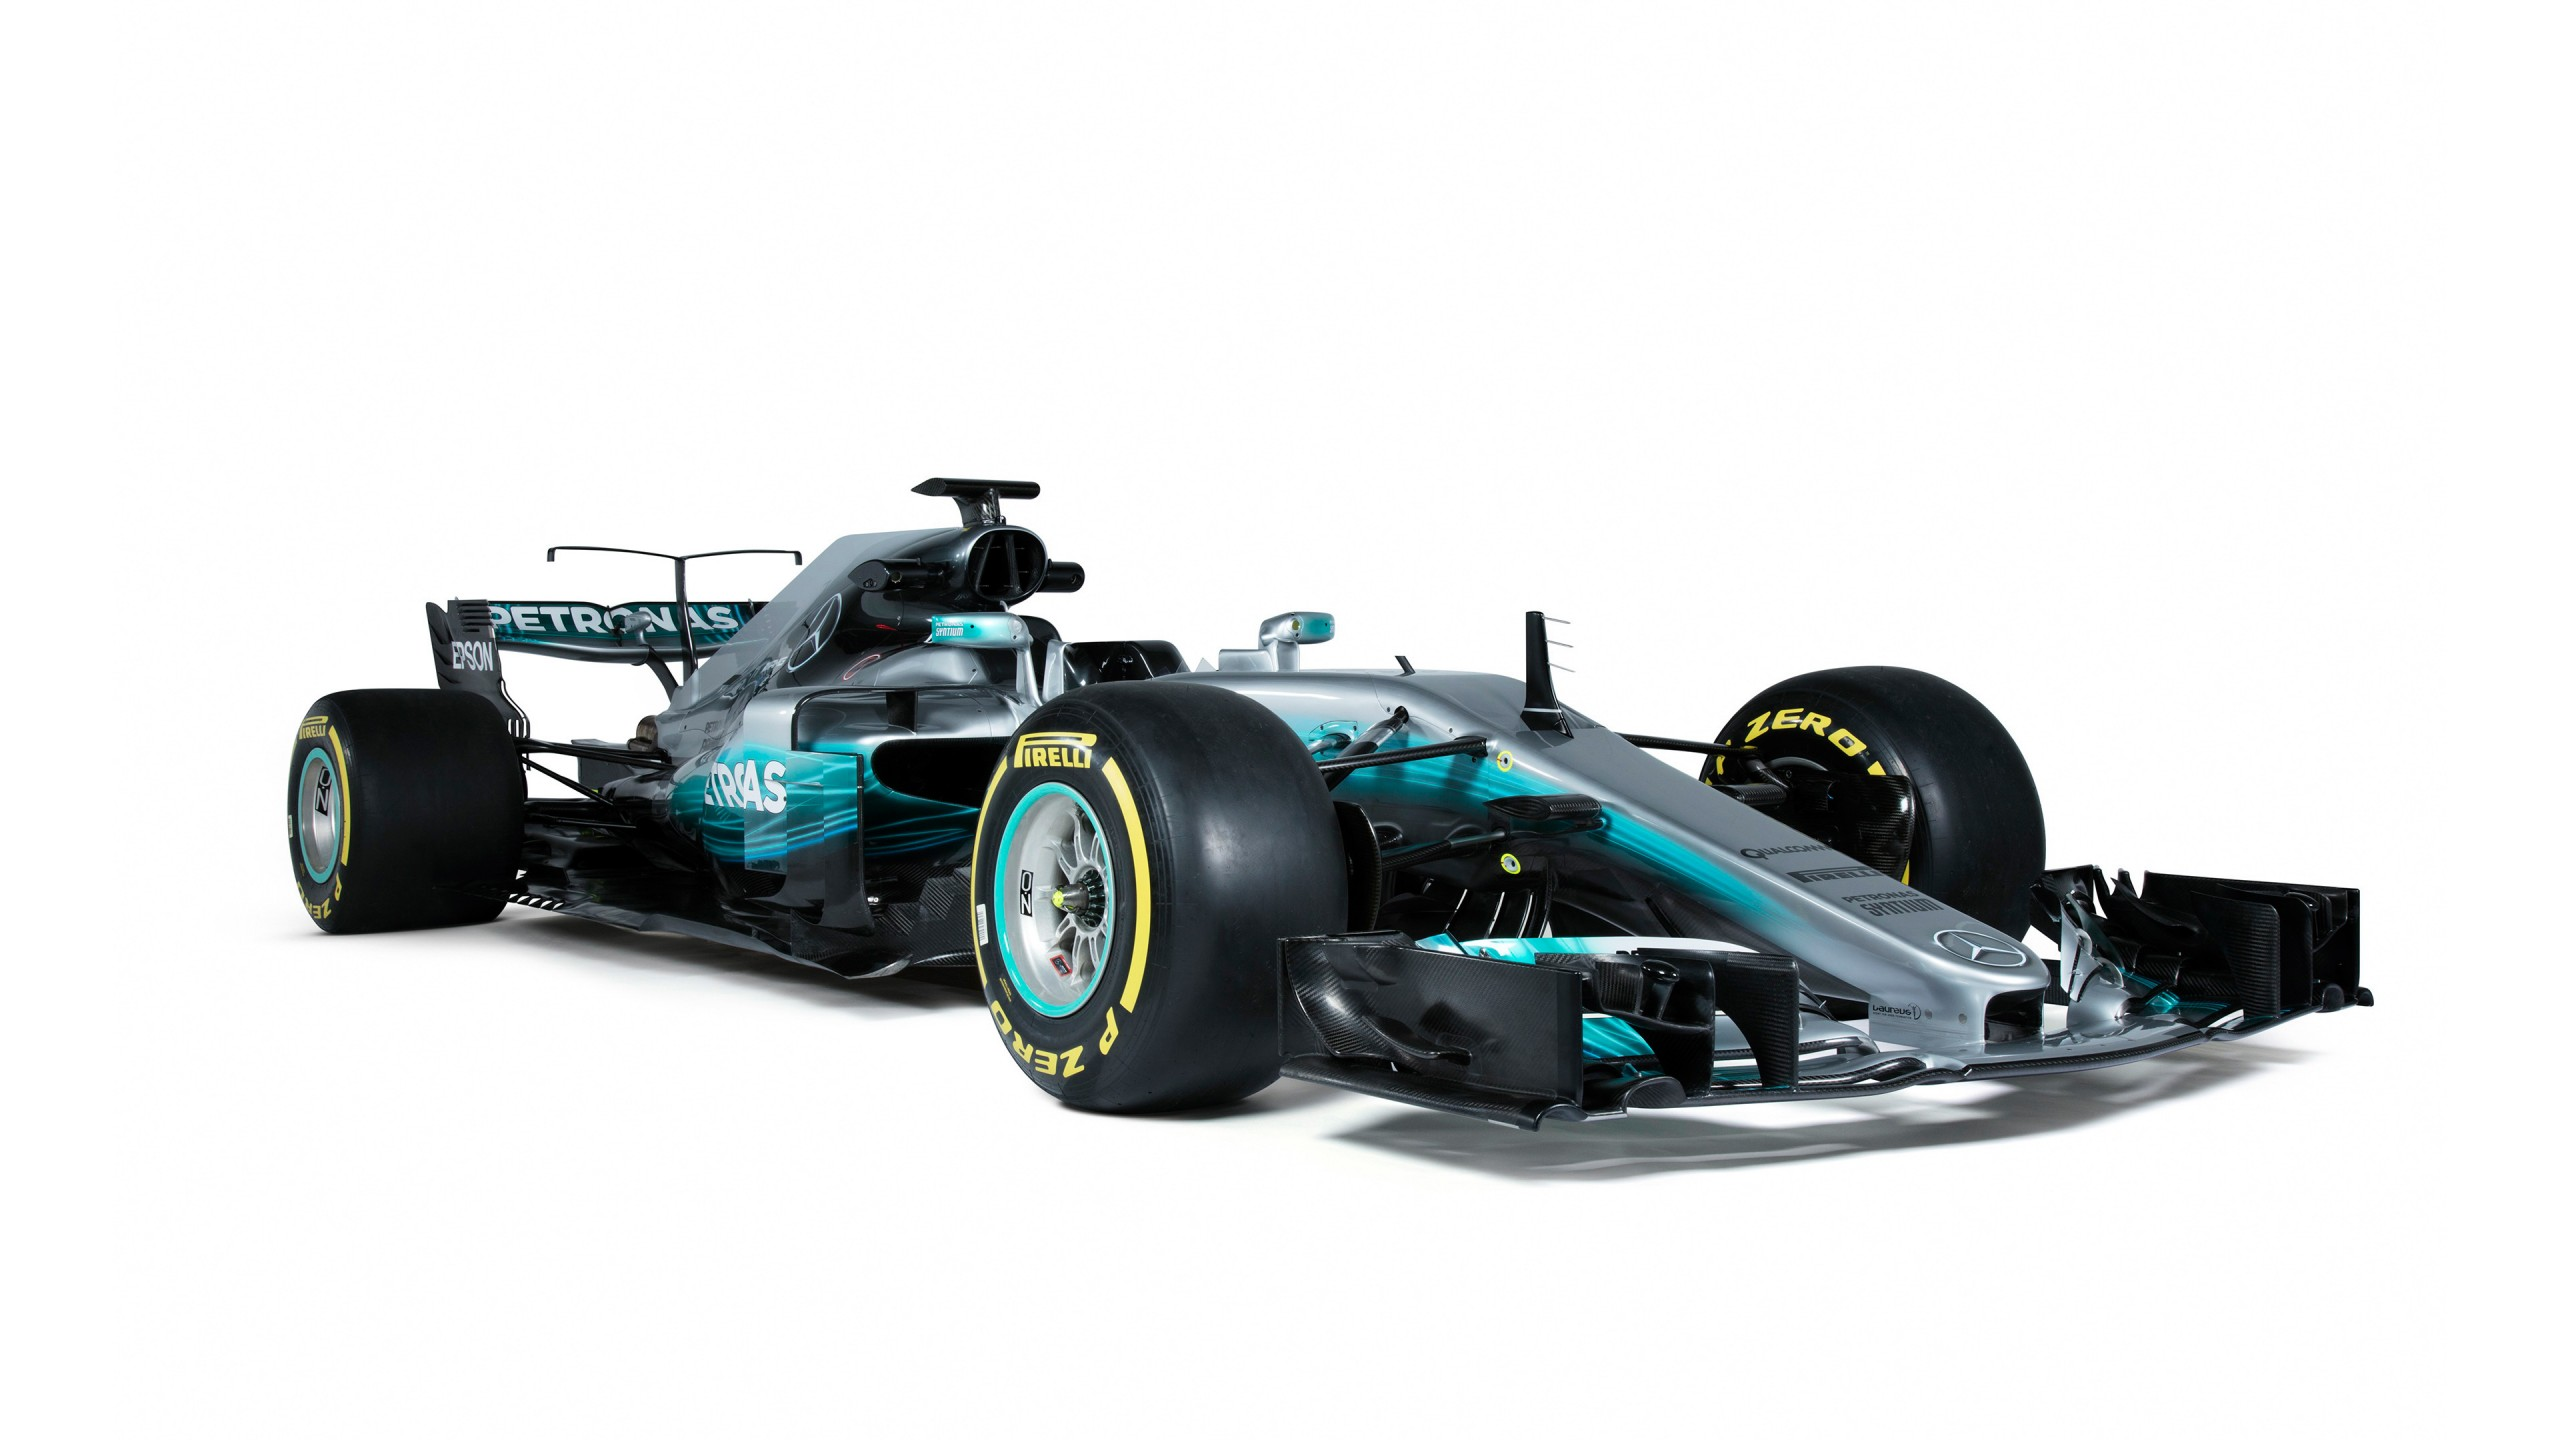 Mercedes 2017 f1 car wallpaper